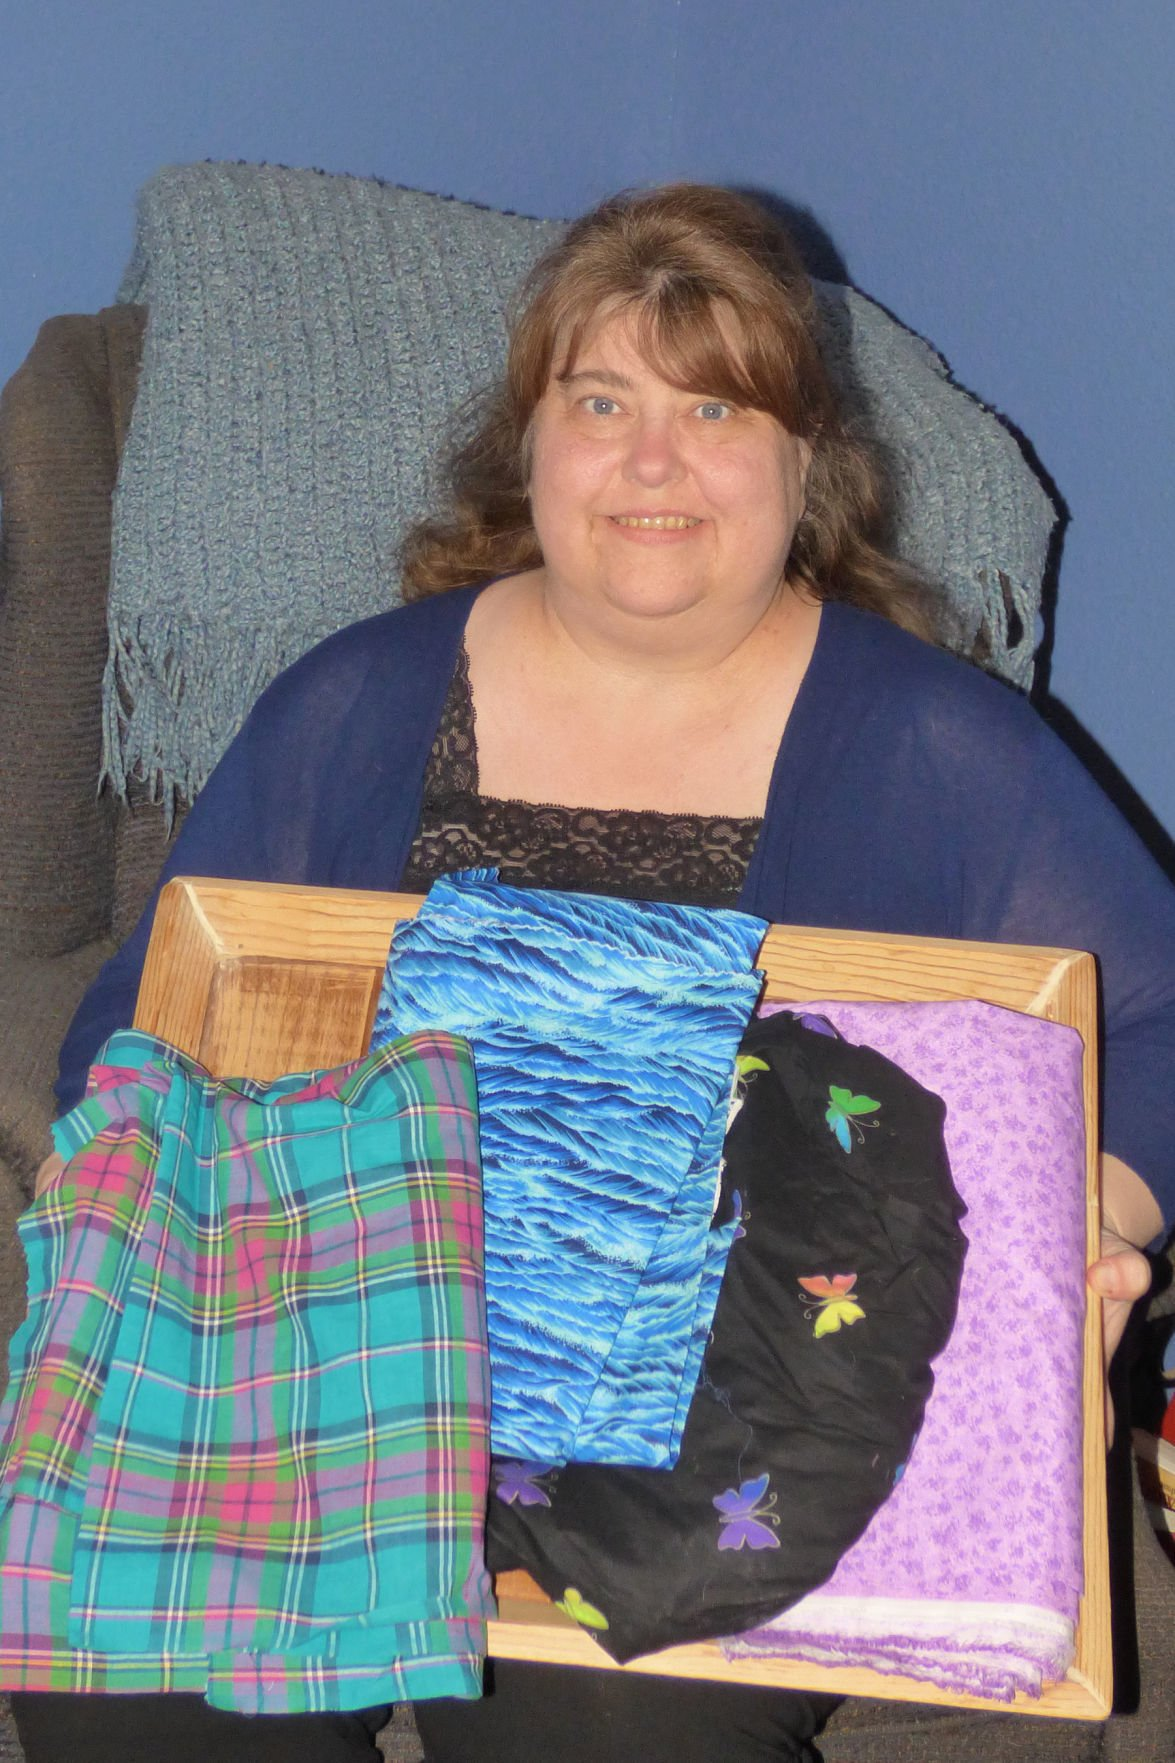 Sewing: Shannon Guss